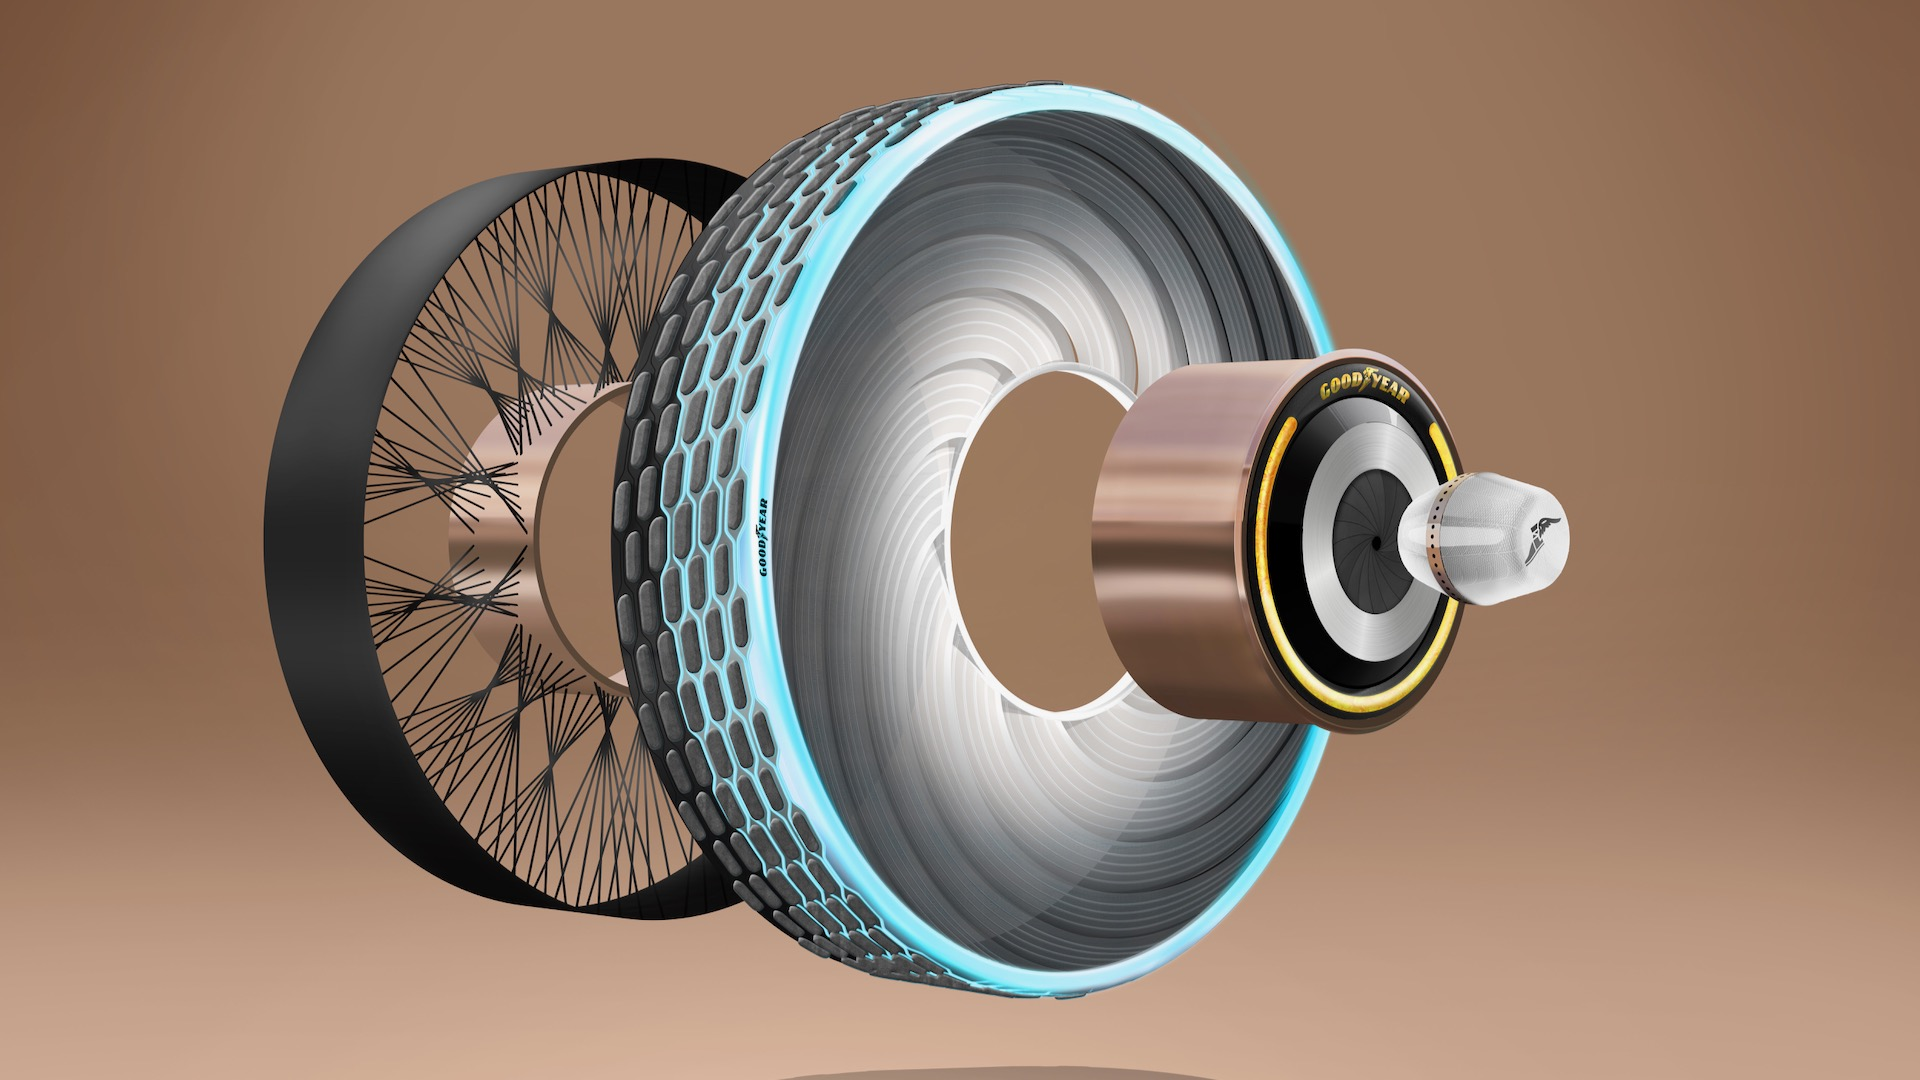 Goodyear Develops Tires with self-regenerating Tread for Electric Cars